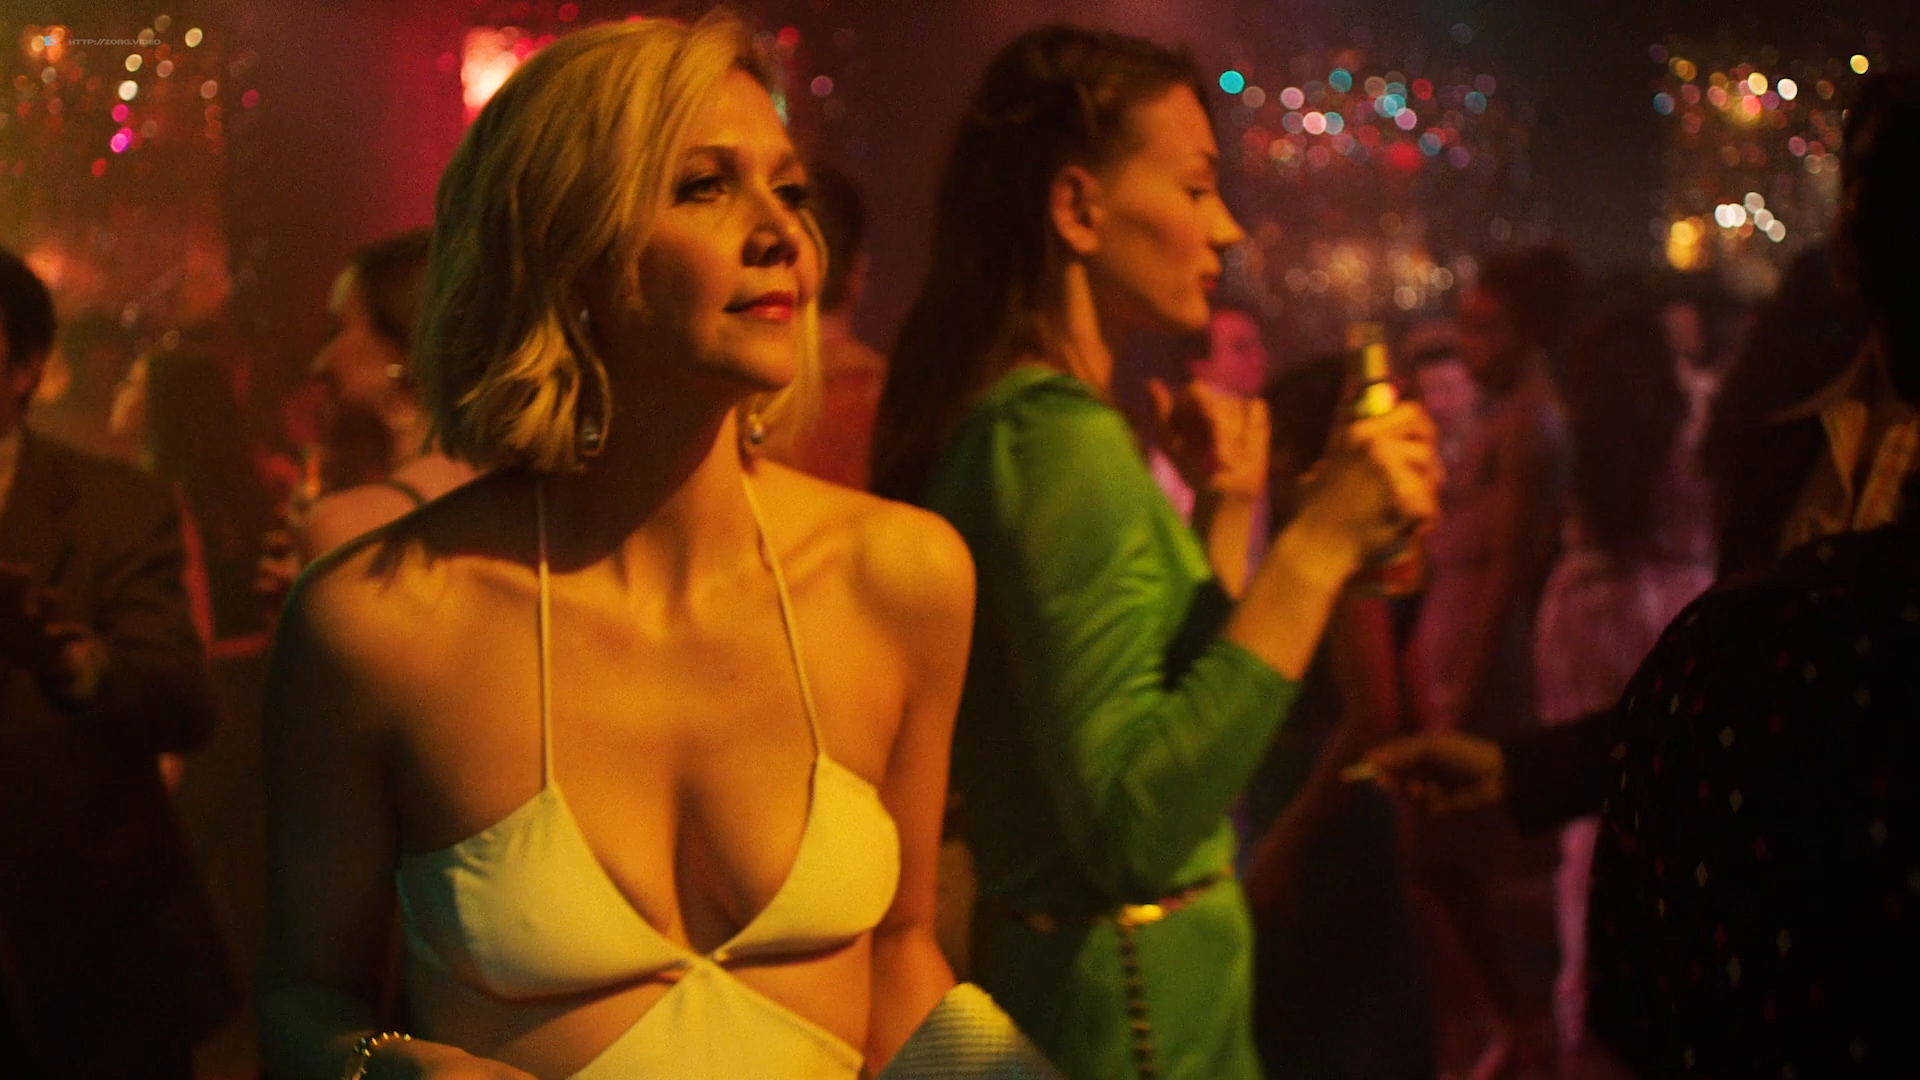 Margarita Levieva nude sex Maggie Gyllenhaal and Emily Meade hot - The Deuce (2018) s2e1 HD 1080p (15)